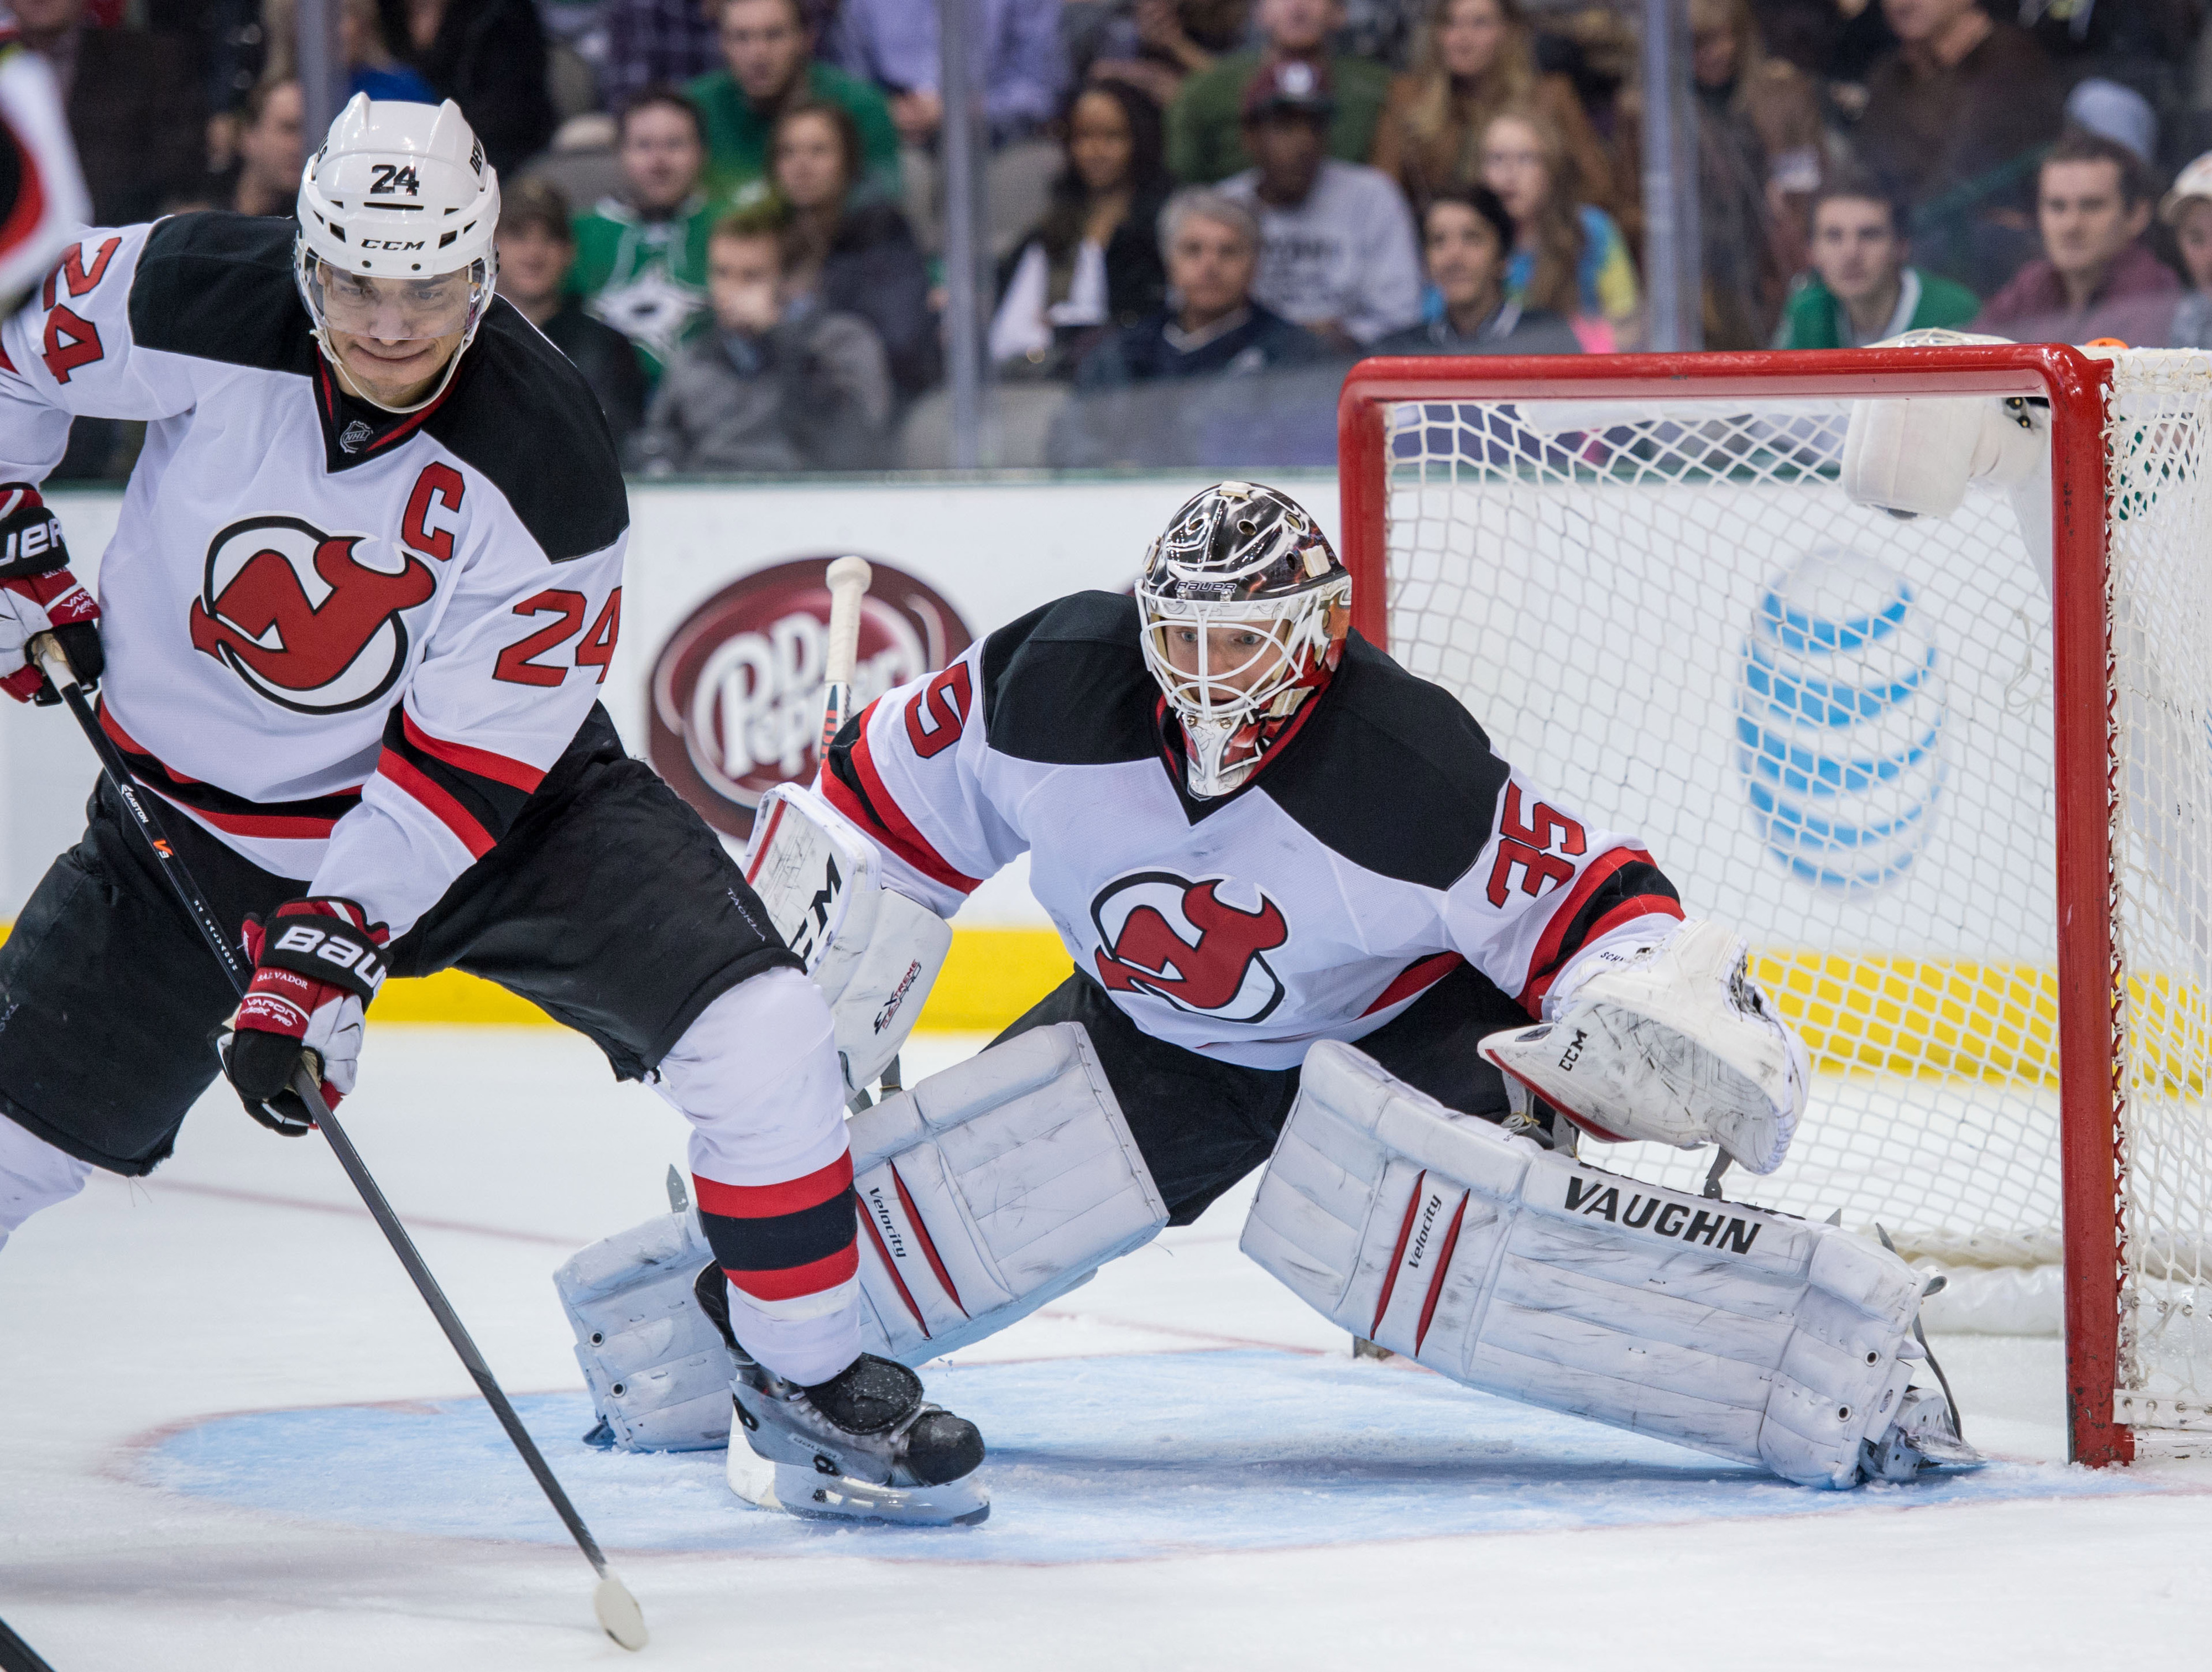 The penalty kill: The one area where Bryce Salvador isn't a statistical albatross and the one area where Cory Schneider ruled - last season.